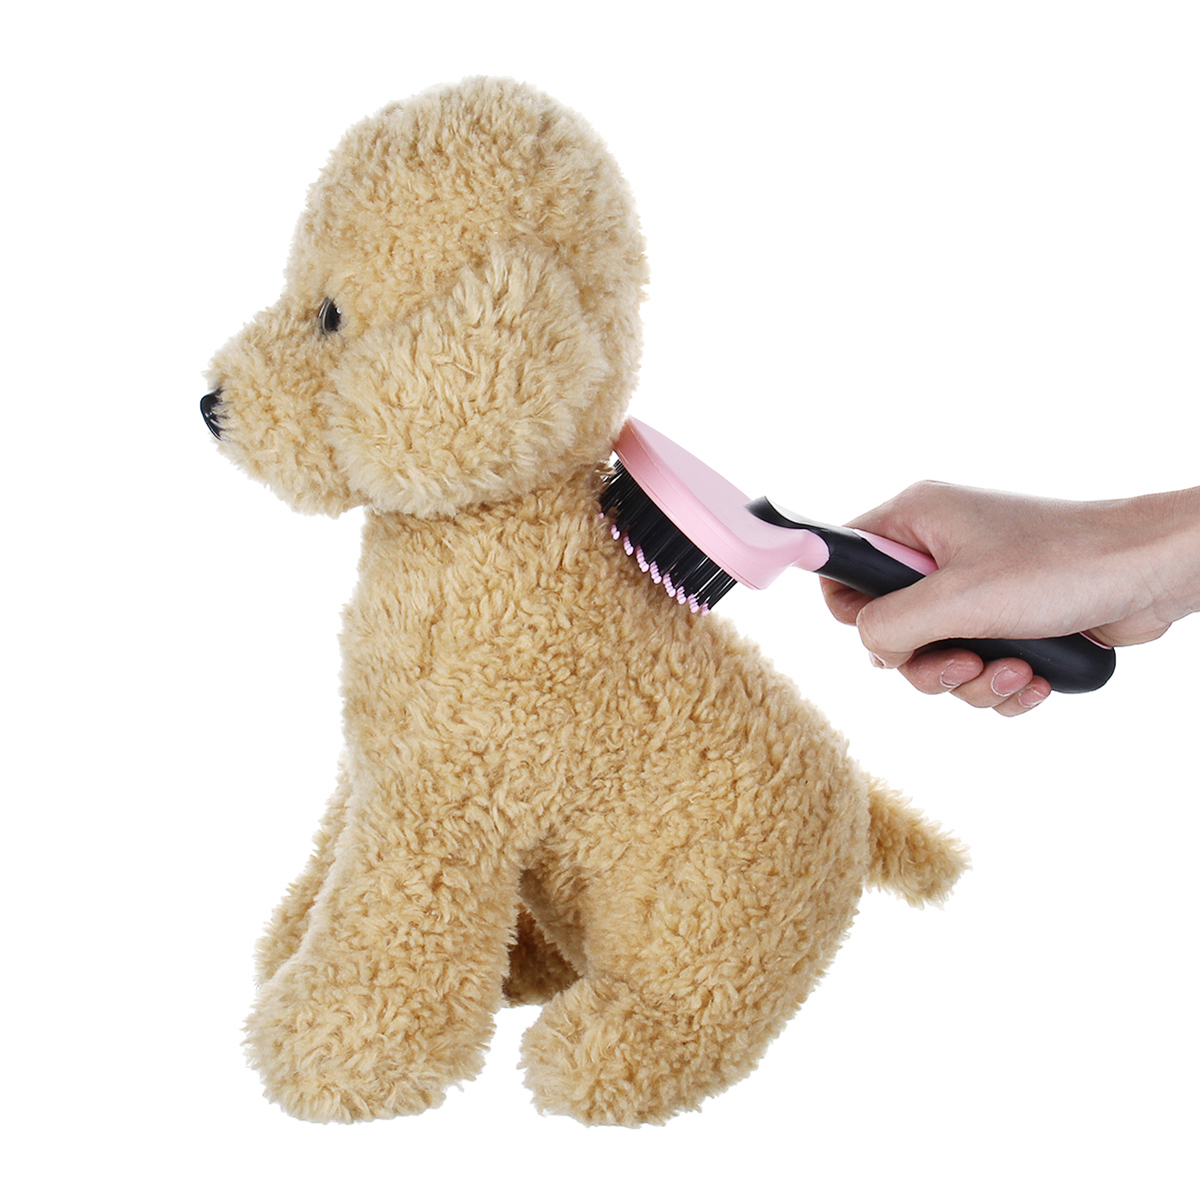 Horse Hair Grooming Brush Dog Cat Puppy Shedding Fur Comb Slicker Pet Brush Trimming Tools